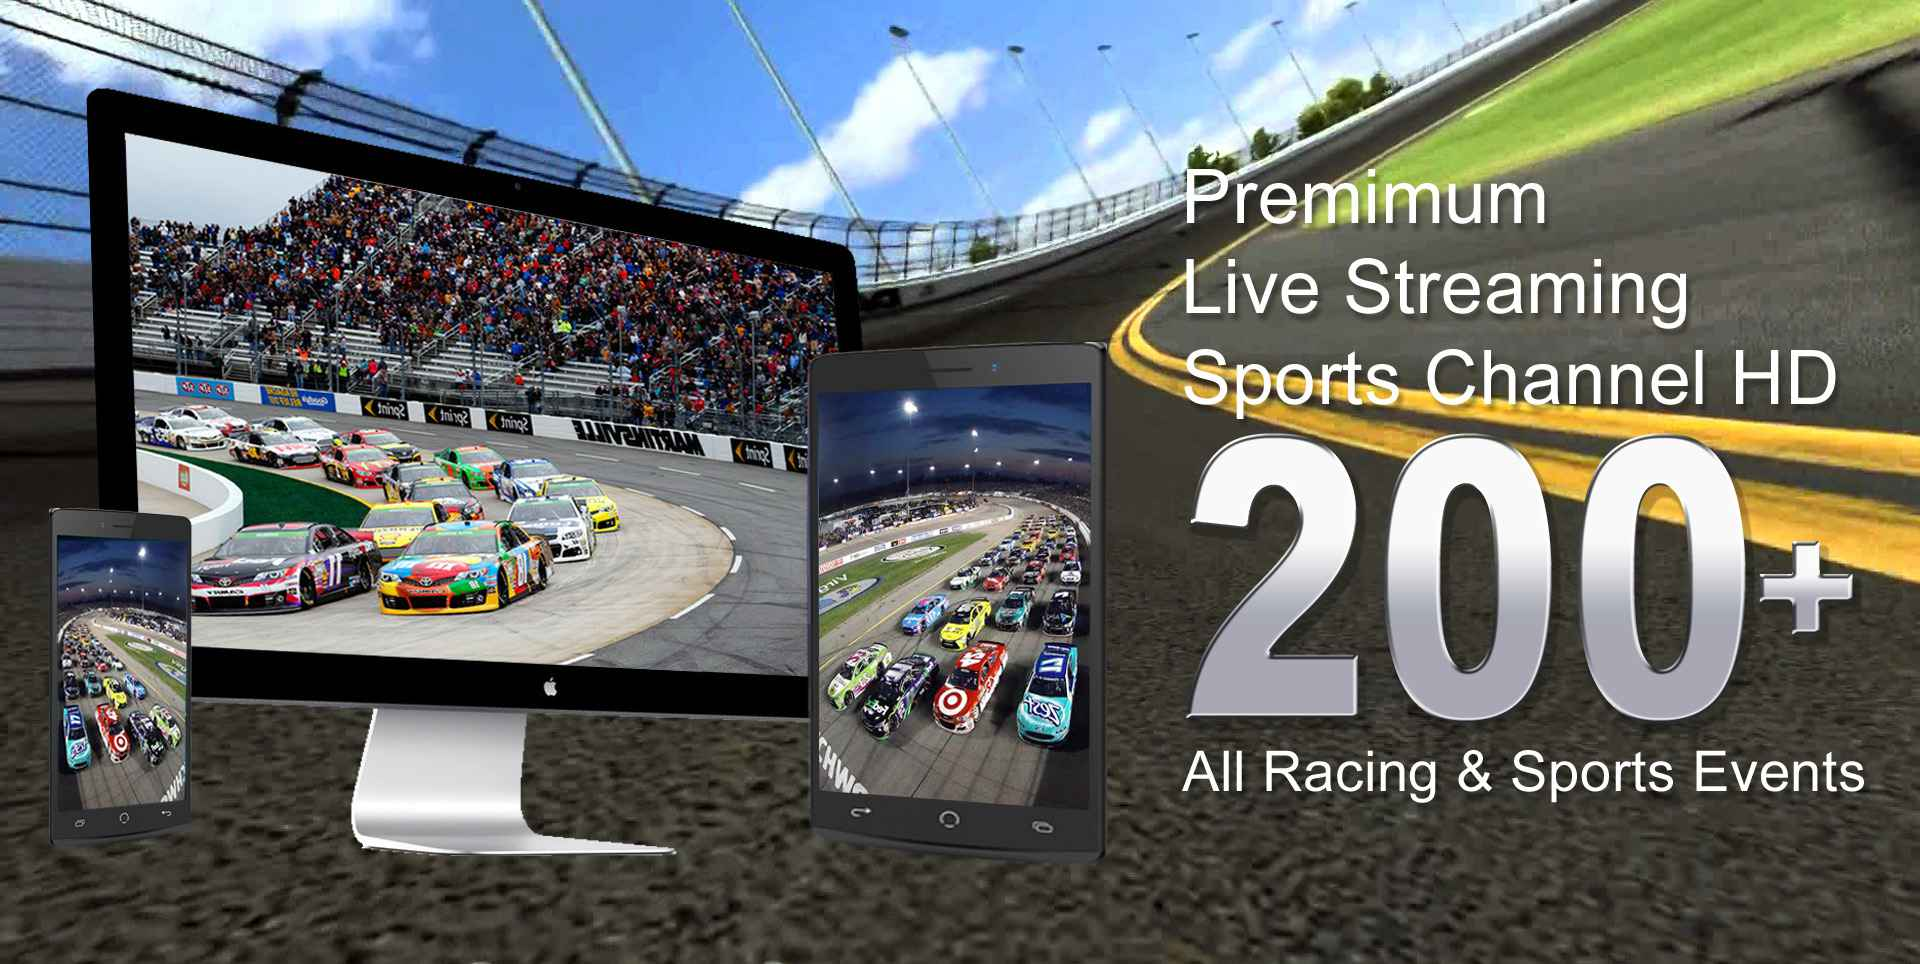 2015 Toyota Care 250 Online